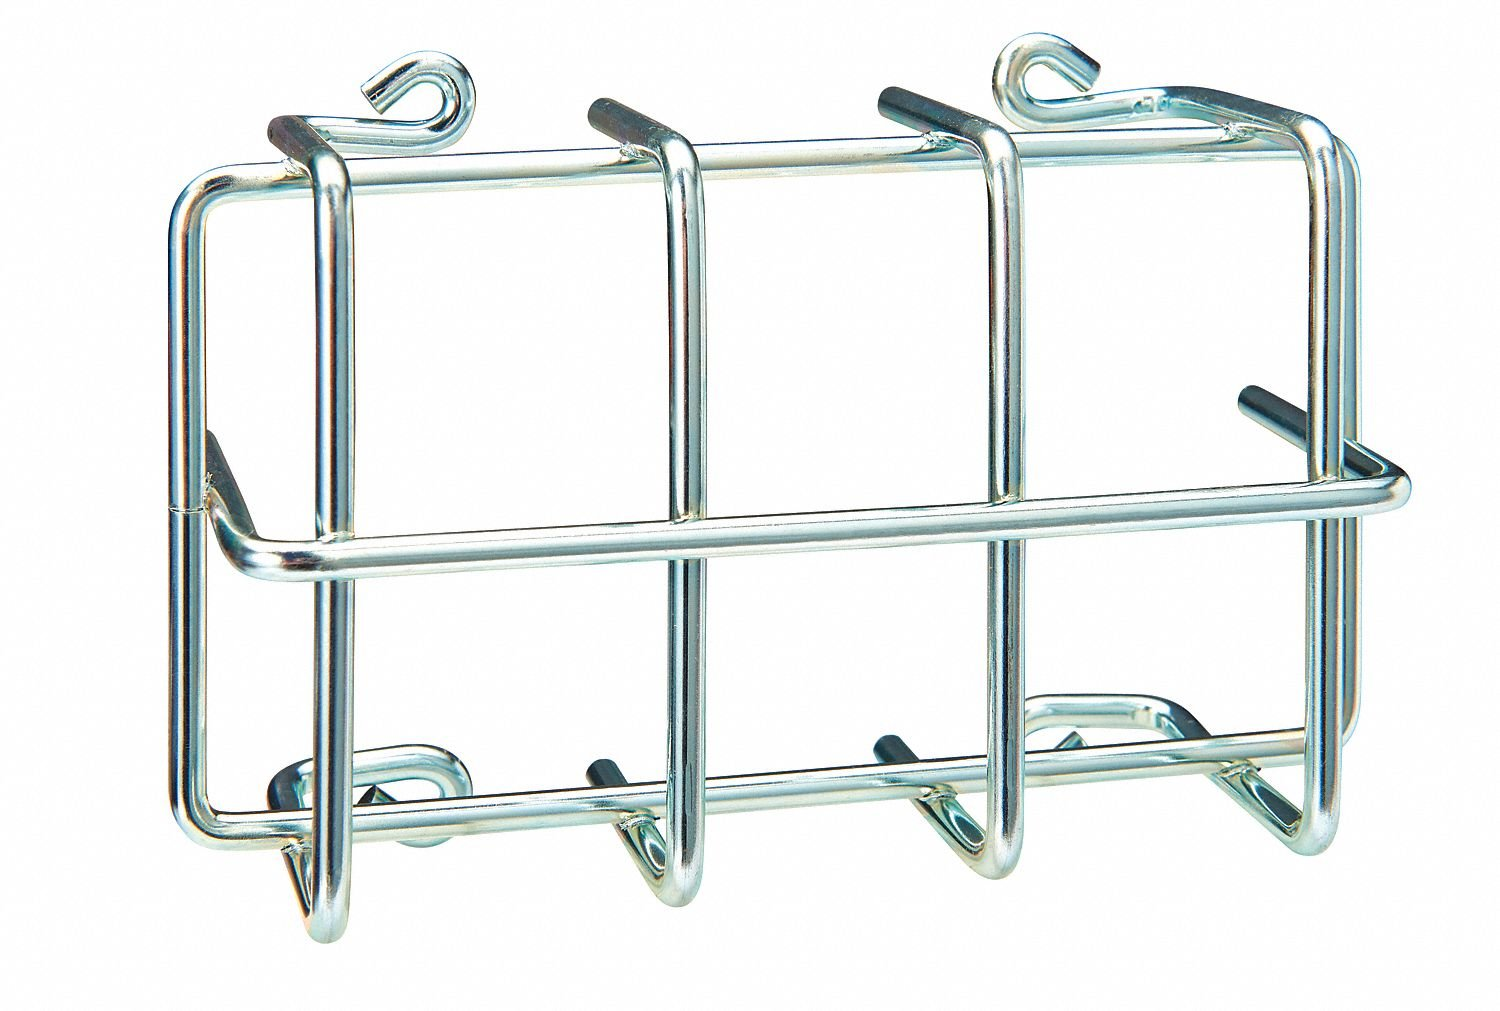 Steel Universal Thermostat Guard, Silver